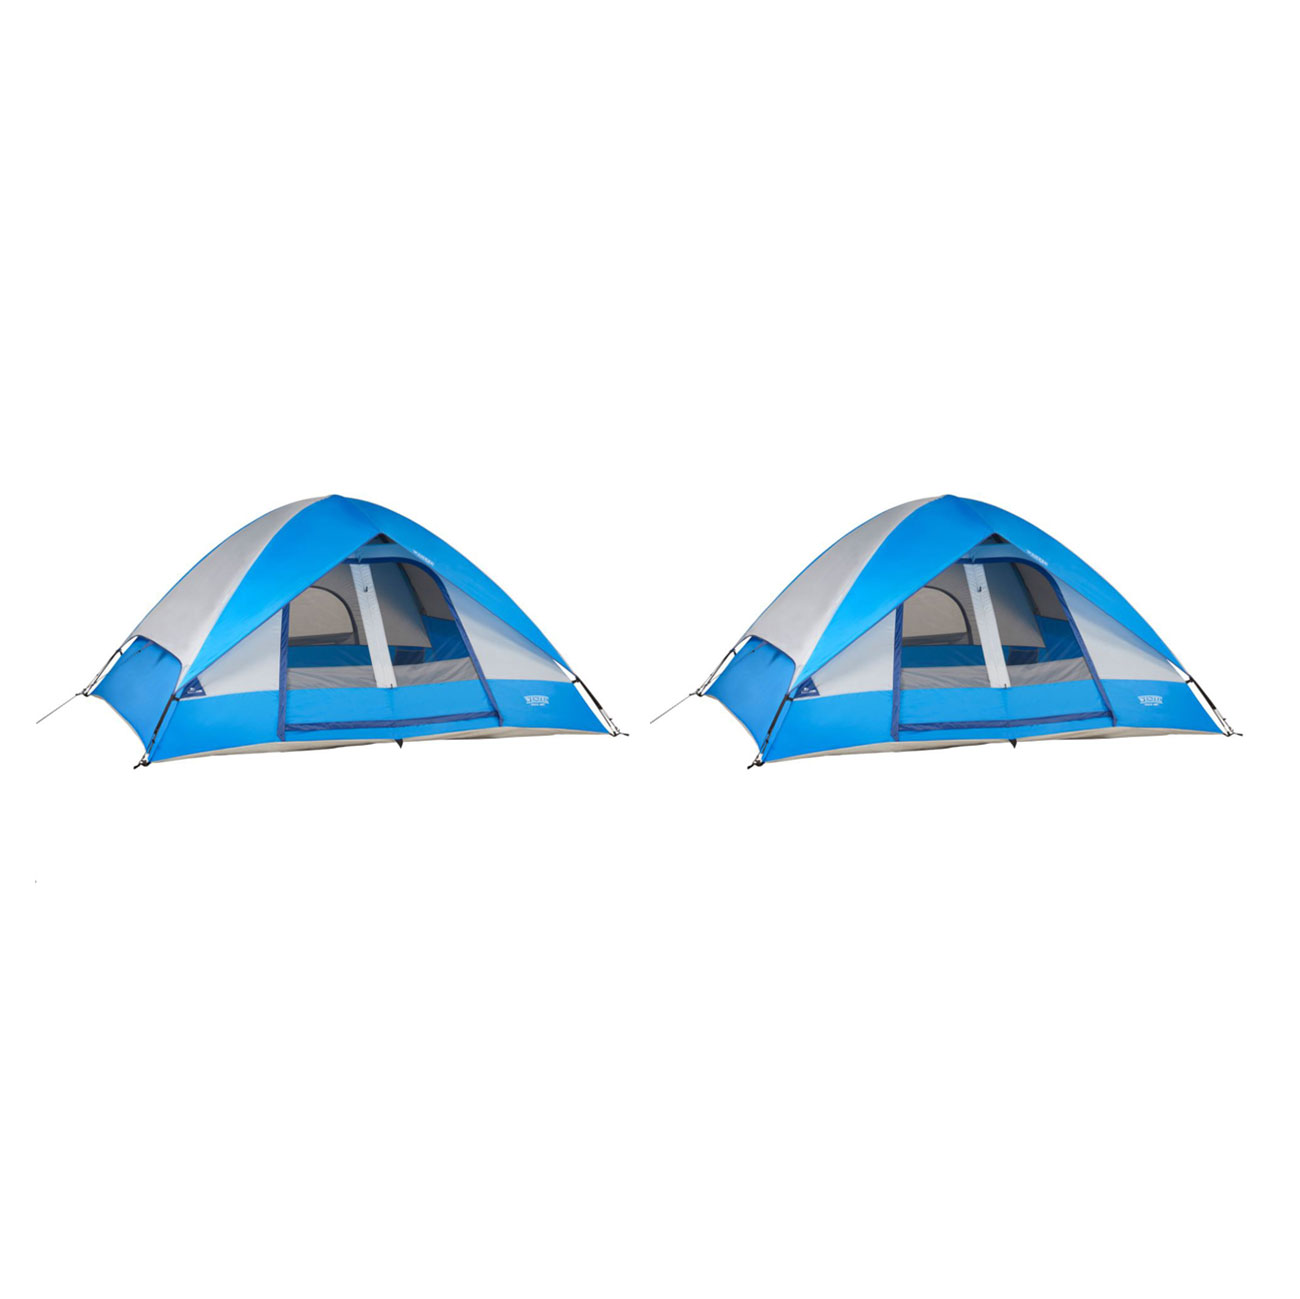 c70f1020bc4 Details about Wenzel 10 x8  Pine Ridge 5 Person Lite Reflect Dome Camping  Tent